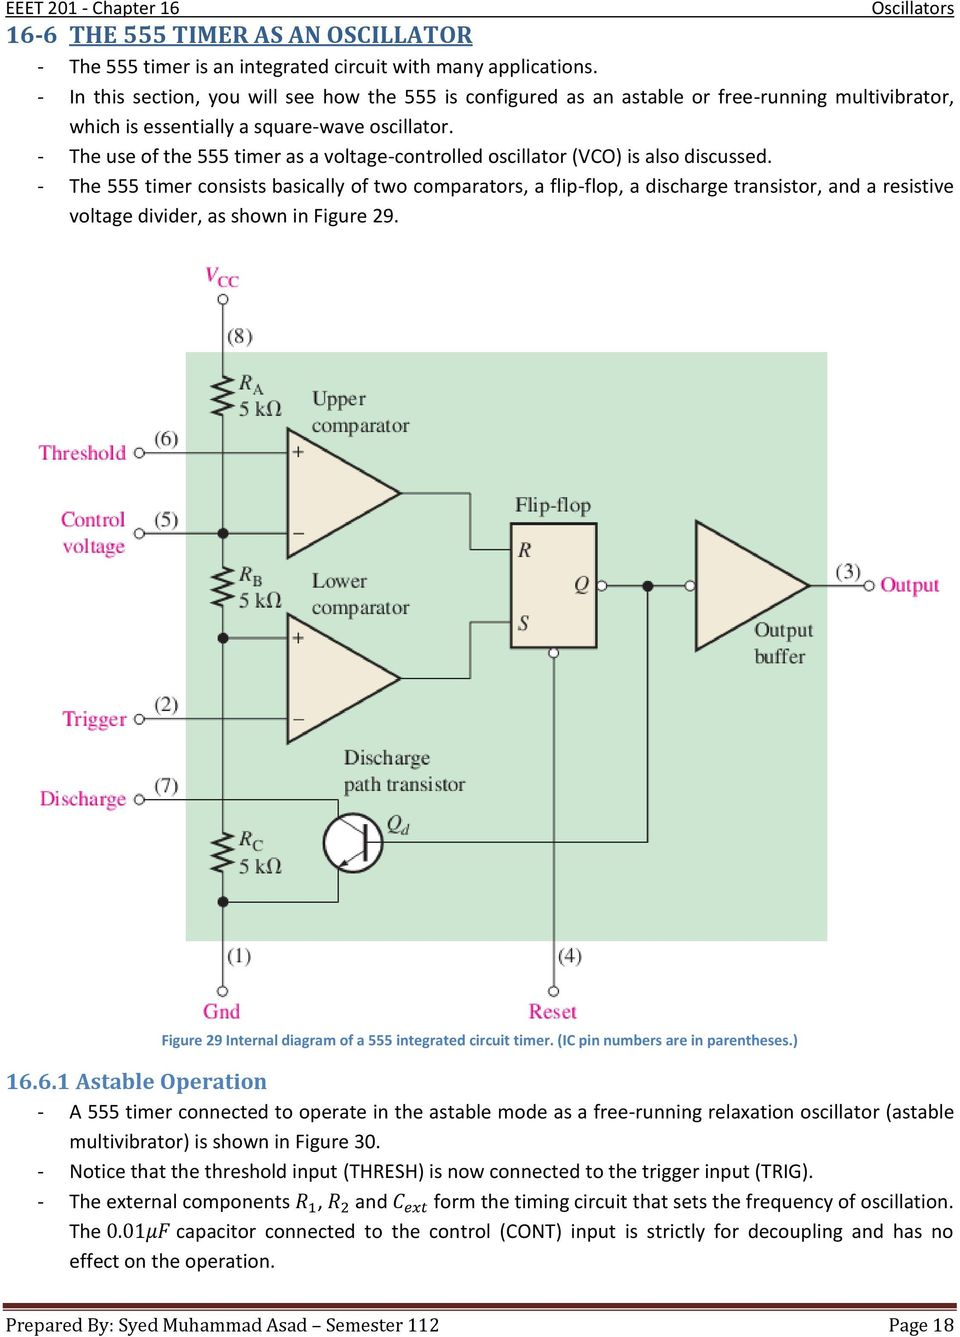 - The use of the 555 timer as a voltage-controlled oscillator (VCO) is also discussed.